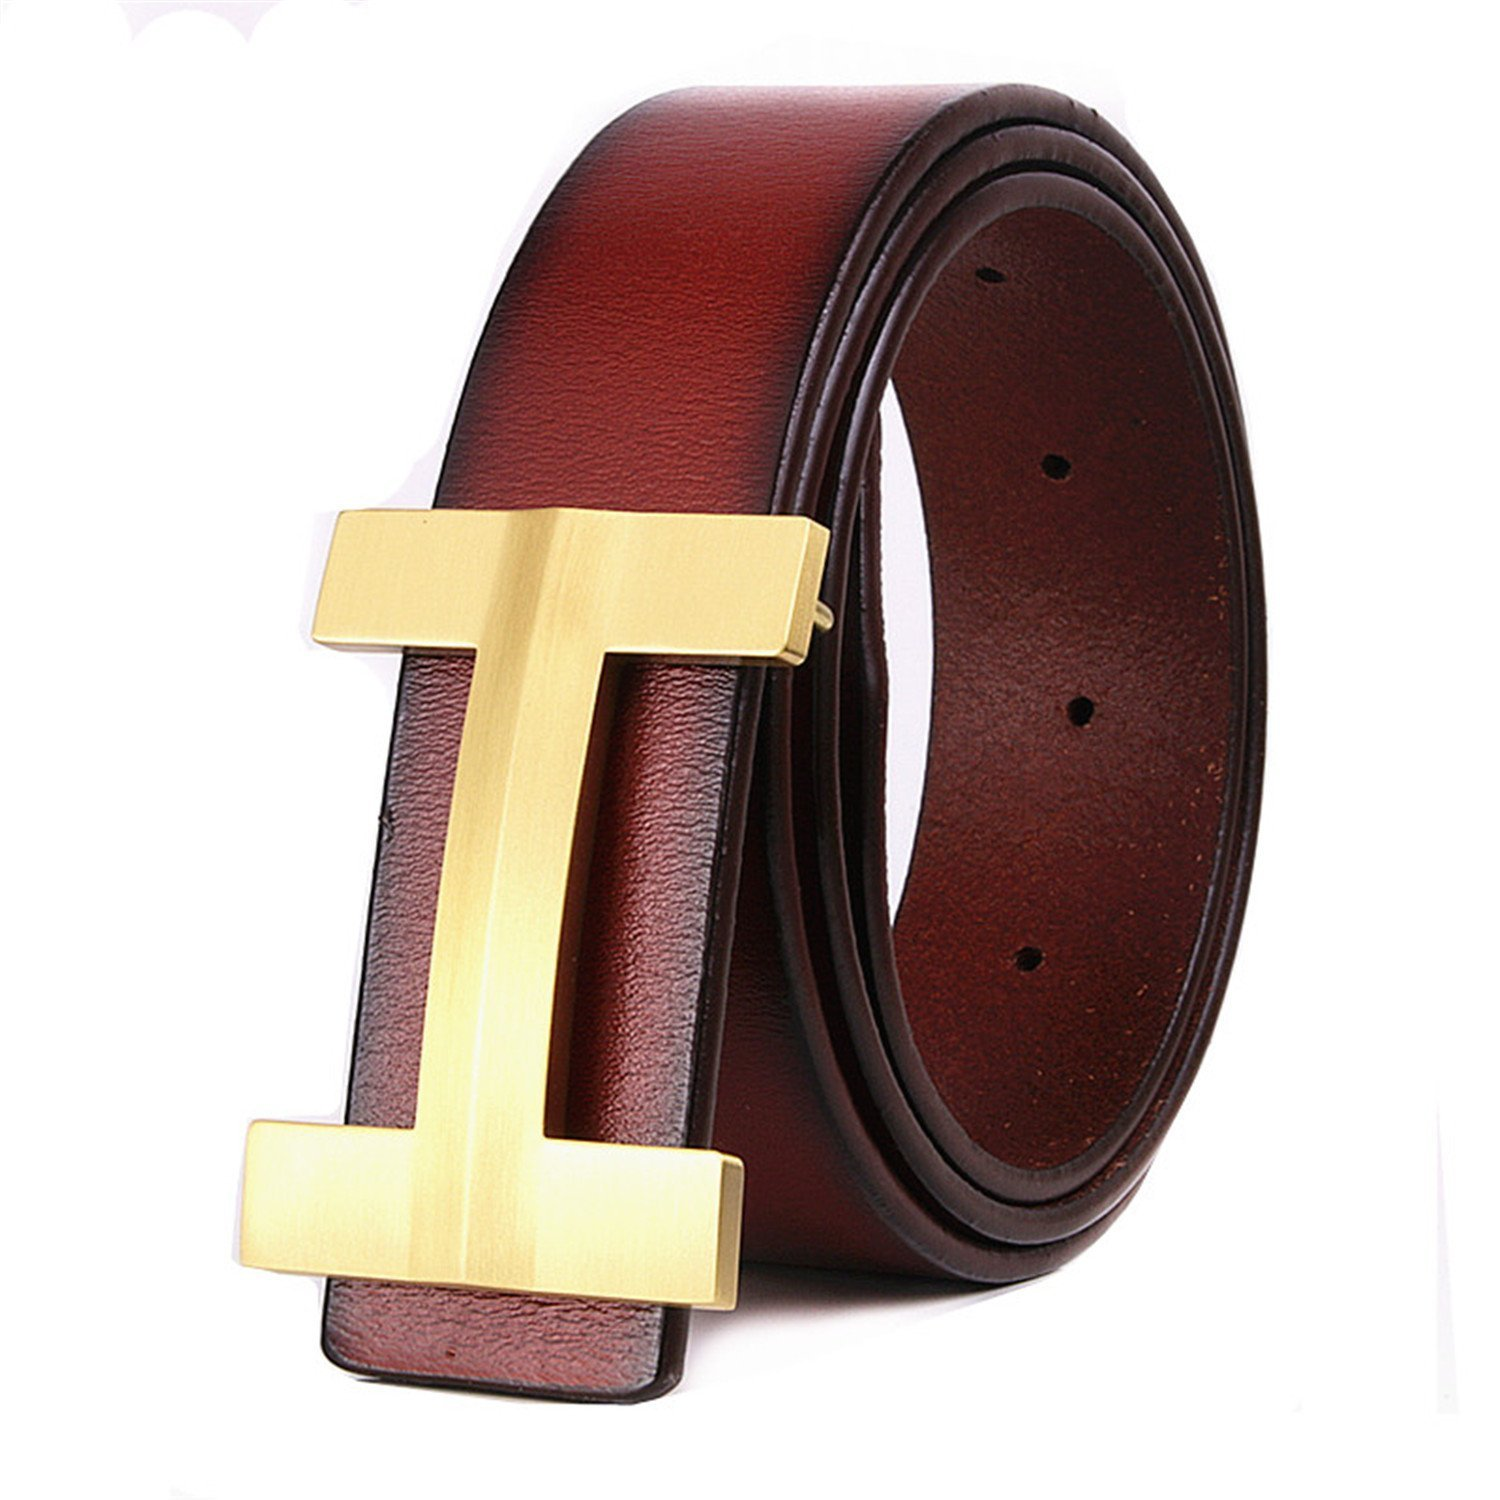 Toping Fine Fashion Men belt solid copper h buckle cowhide leather young male pure belt ceinture h Brown110cm